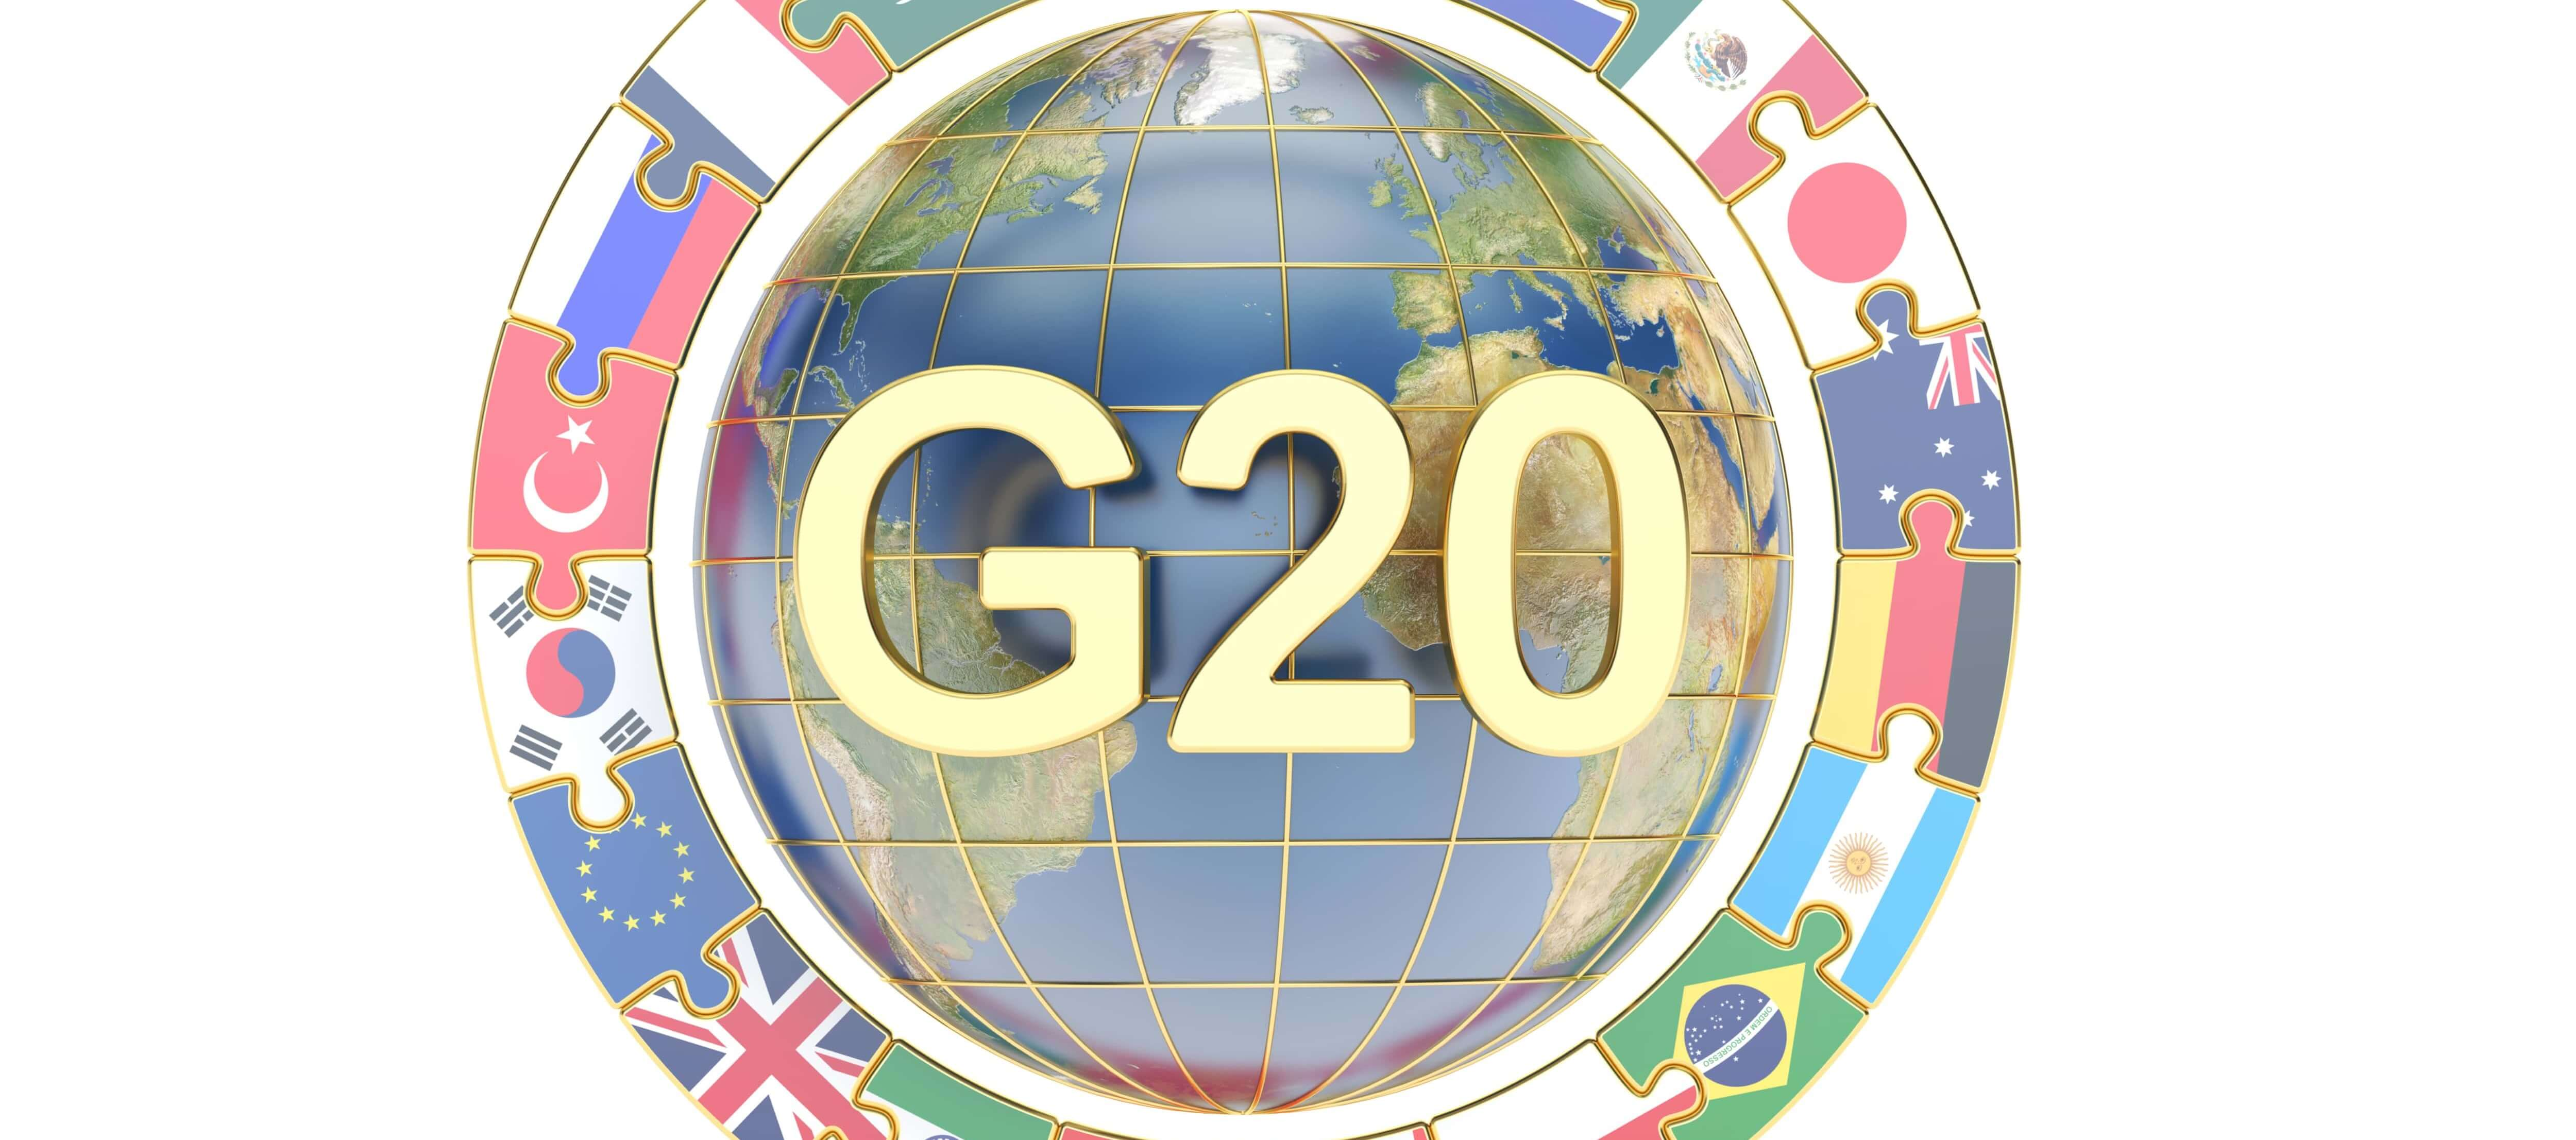 The regulation of the Bitcoin as a topic in the G20